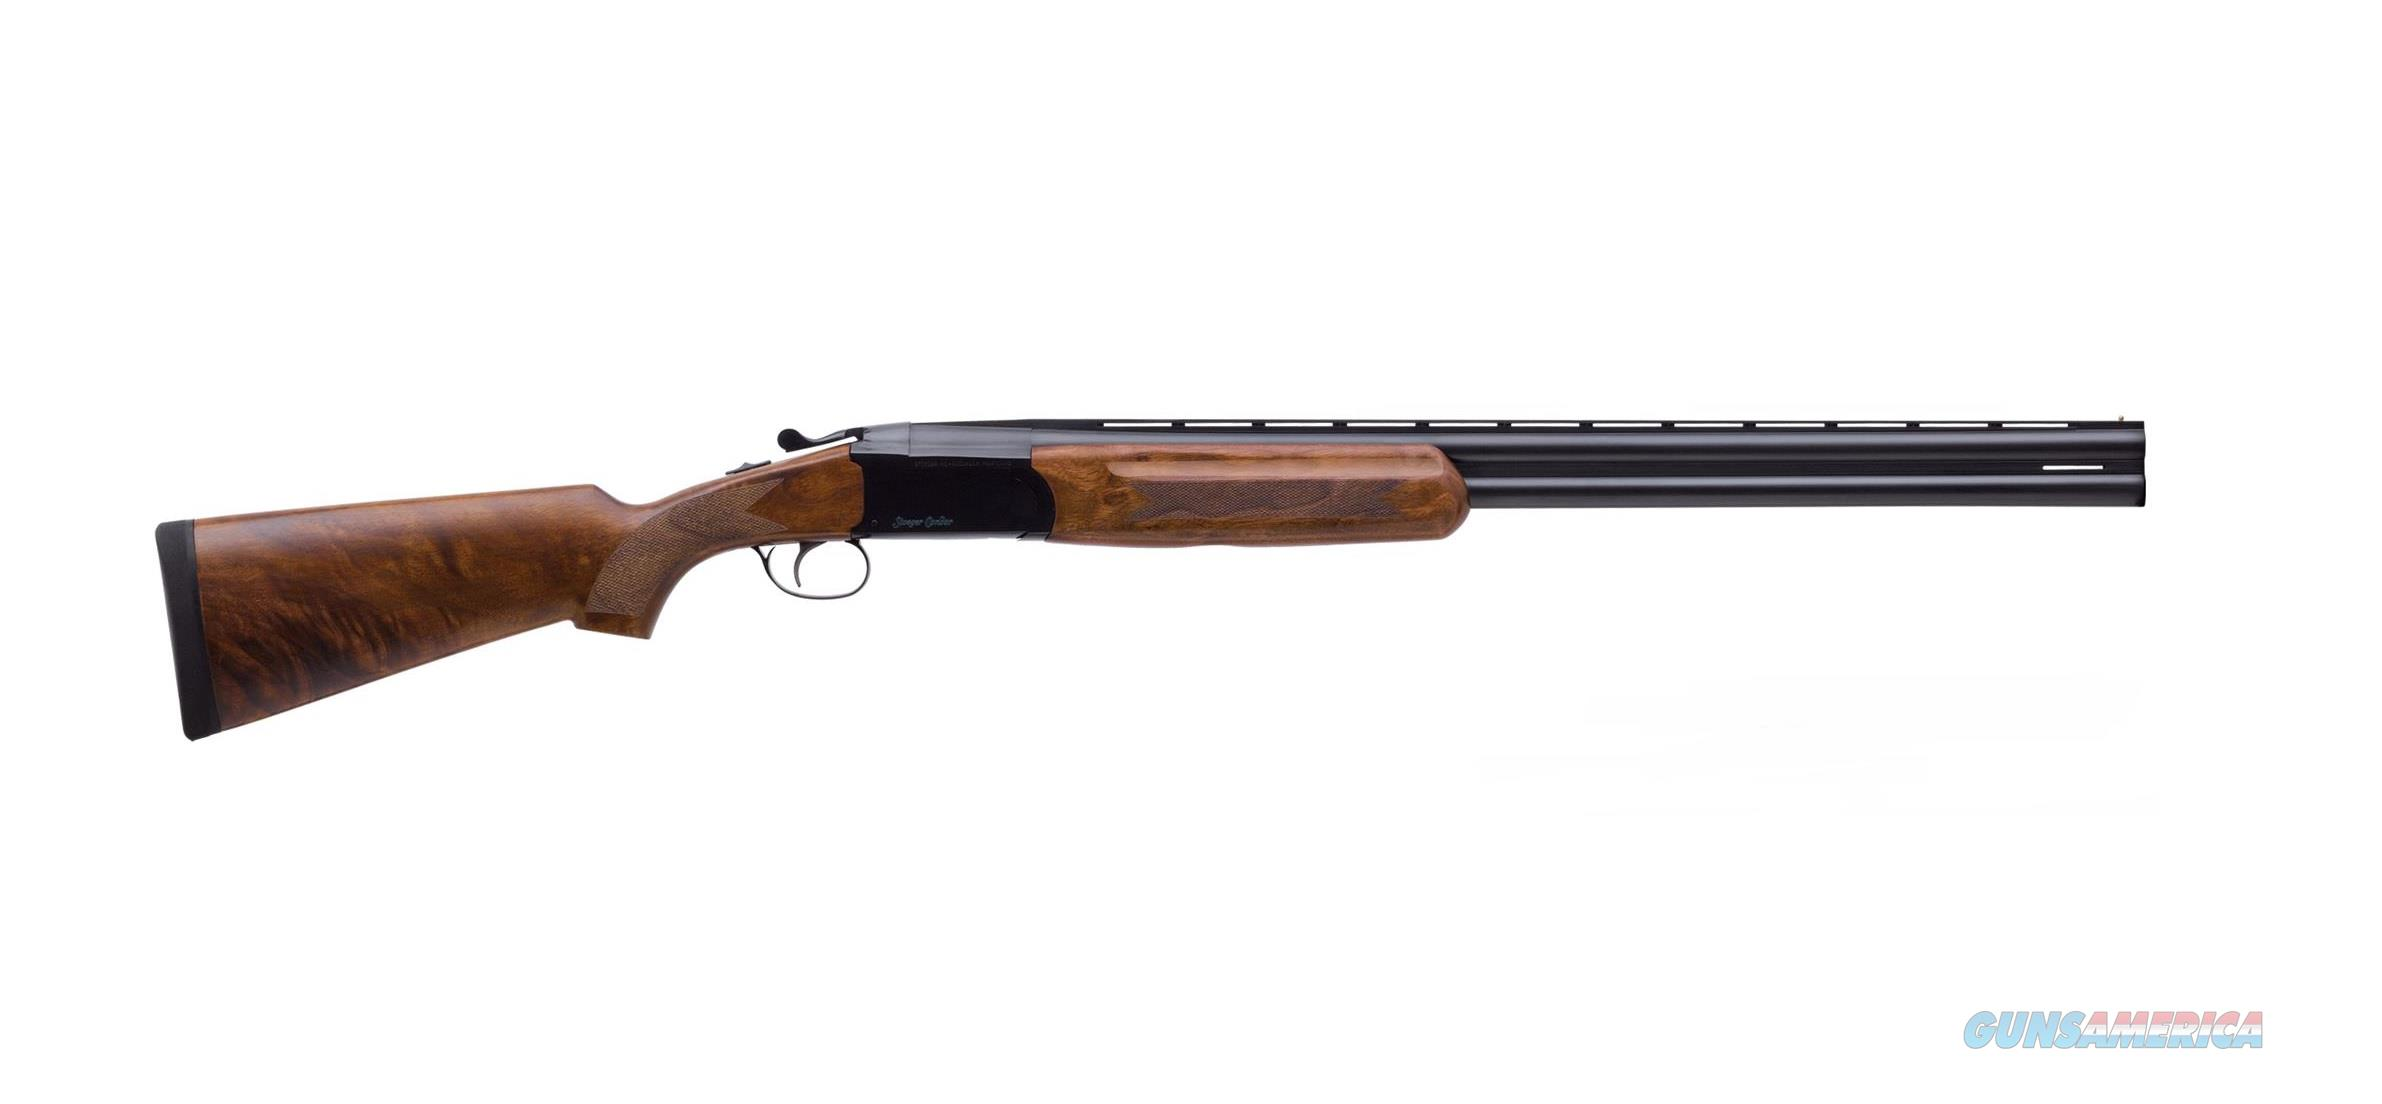 "Stoeger Condor Field O/U .410 Gauge Walnut 26"" 31042   Guns > Shotguns > Stoeger Shotguns"